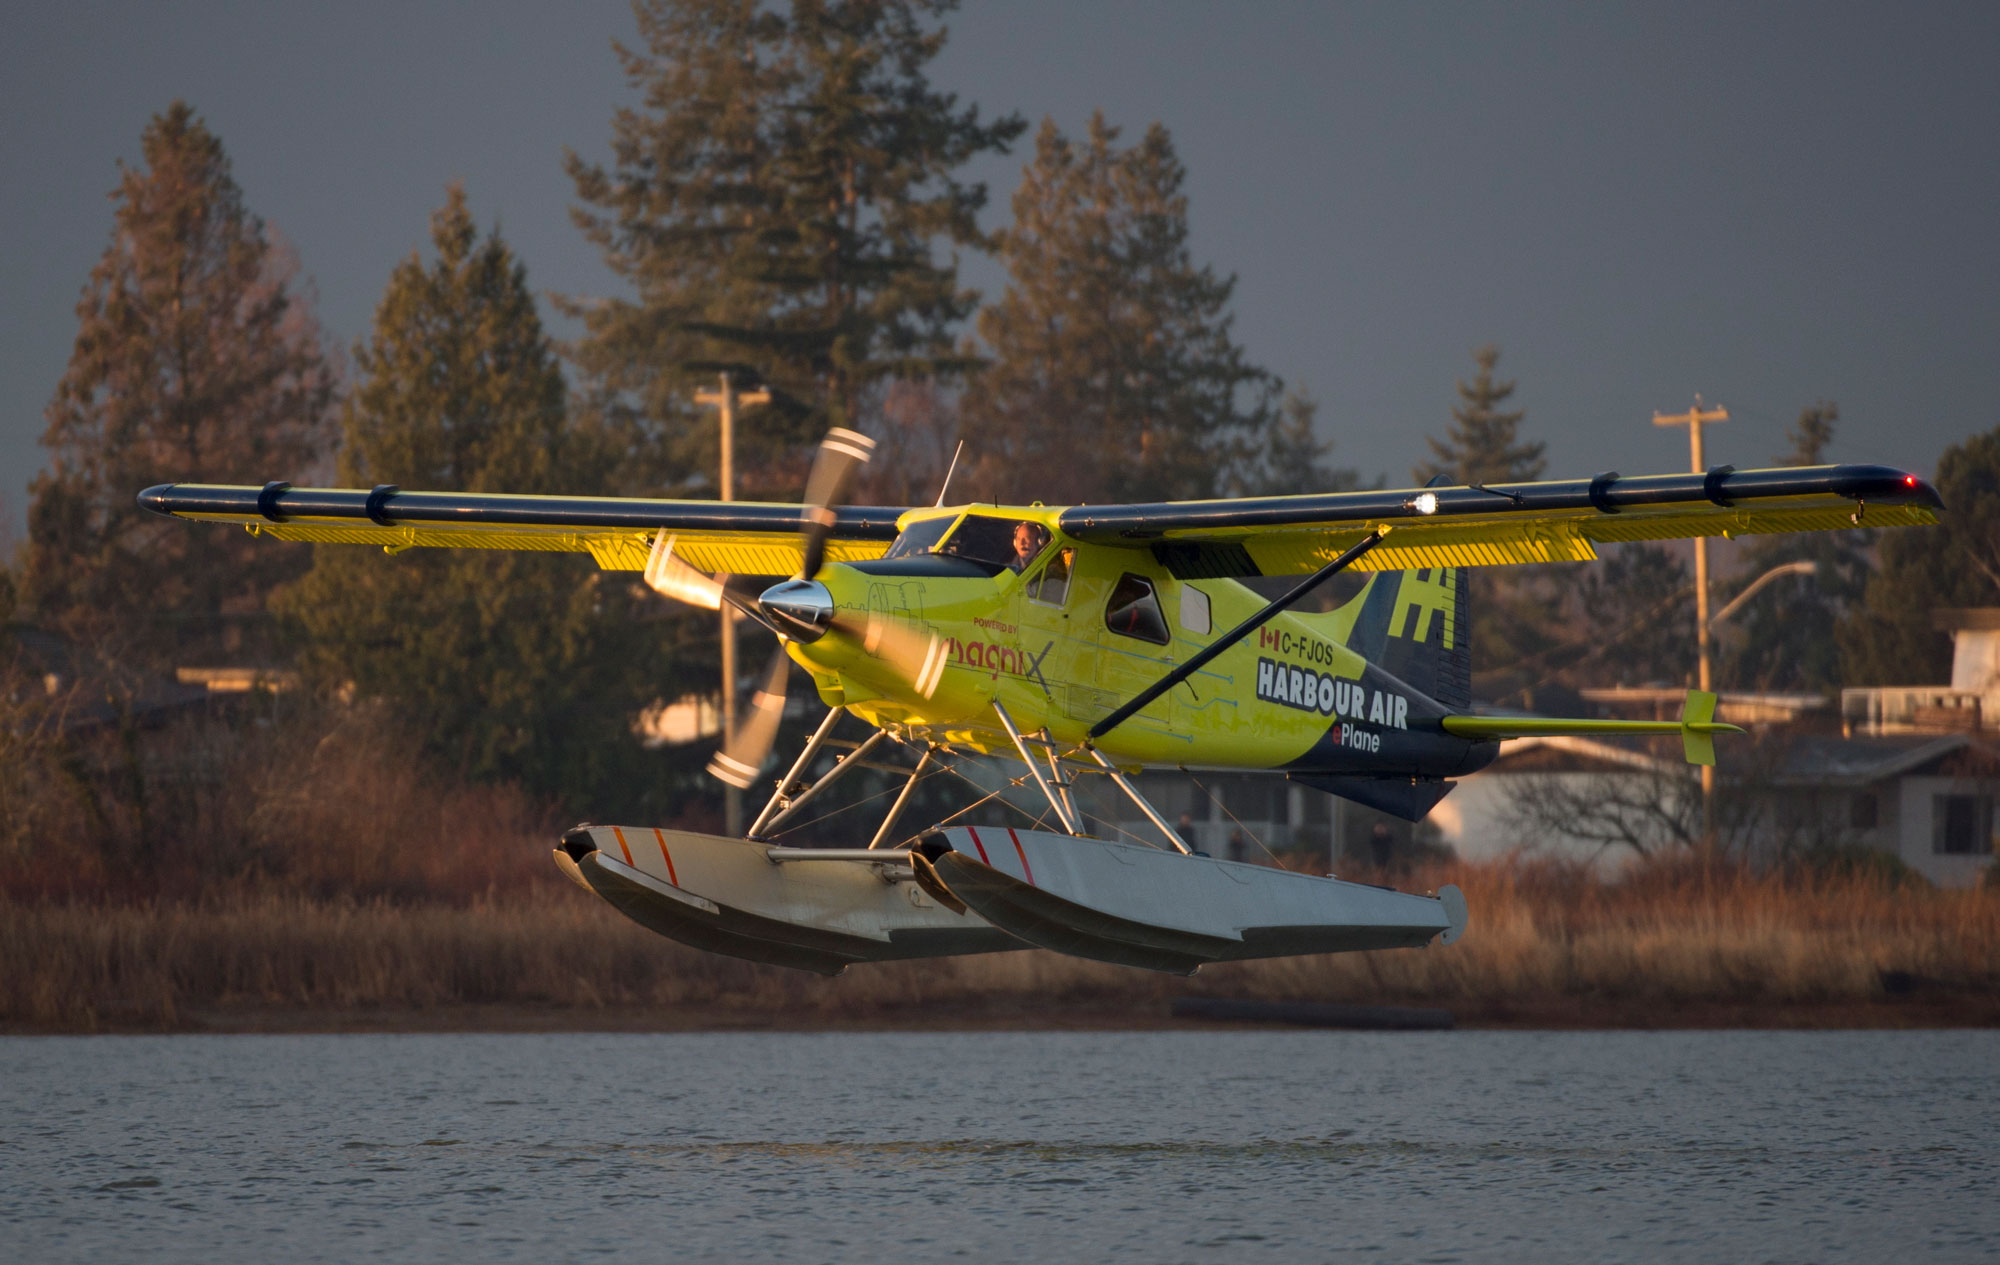 The world's first electric commercial aircraft owned and operated by Harbour Air is seen landing following its maiden flight in Richmond, B.C.